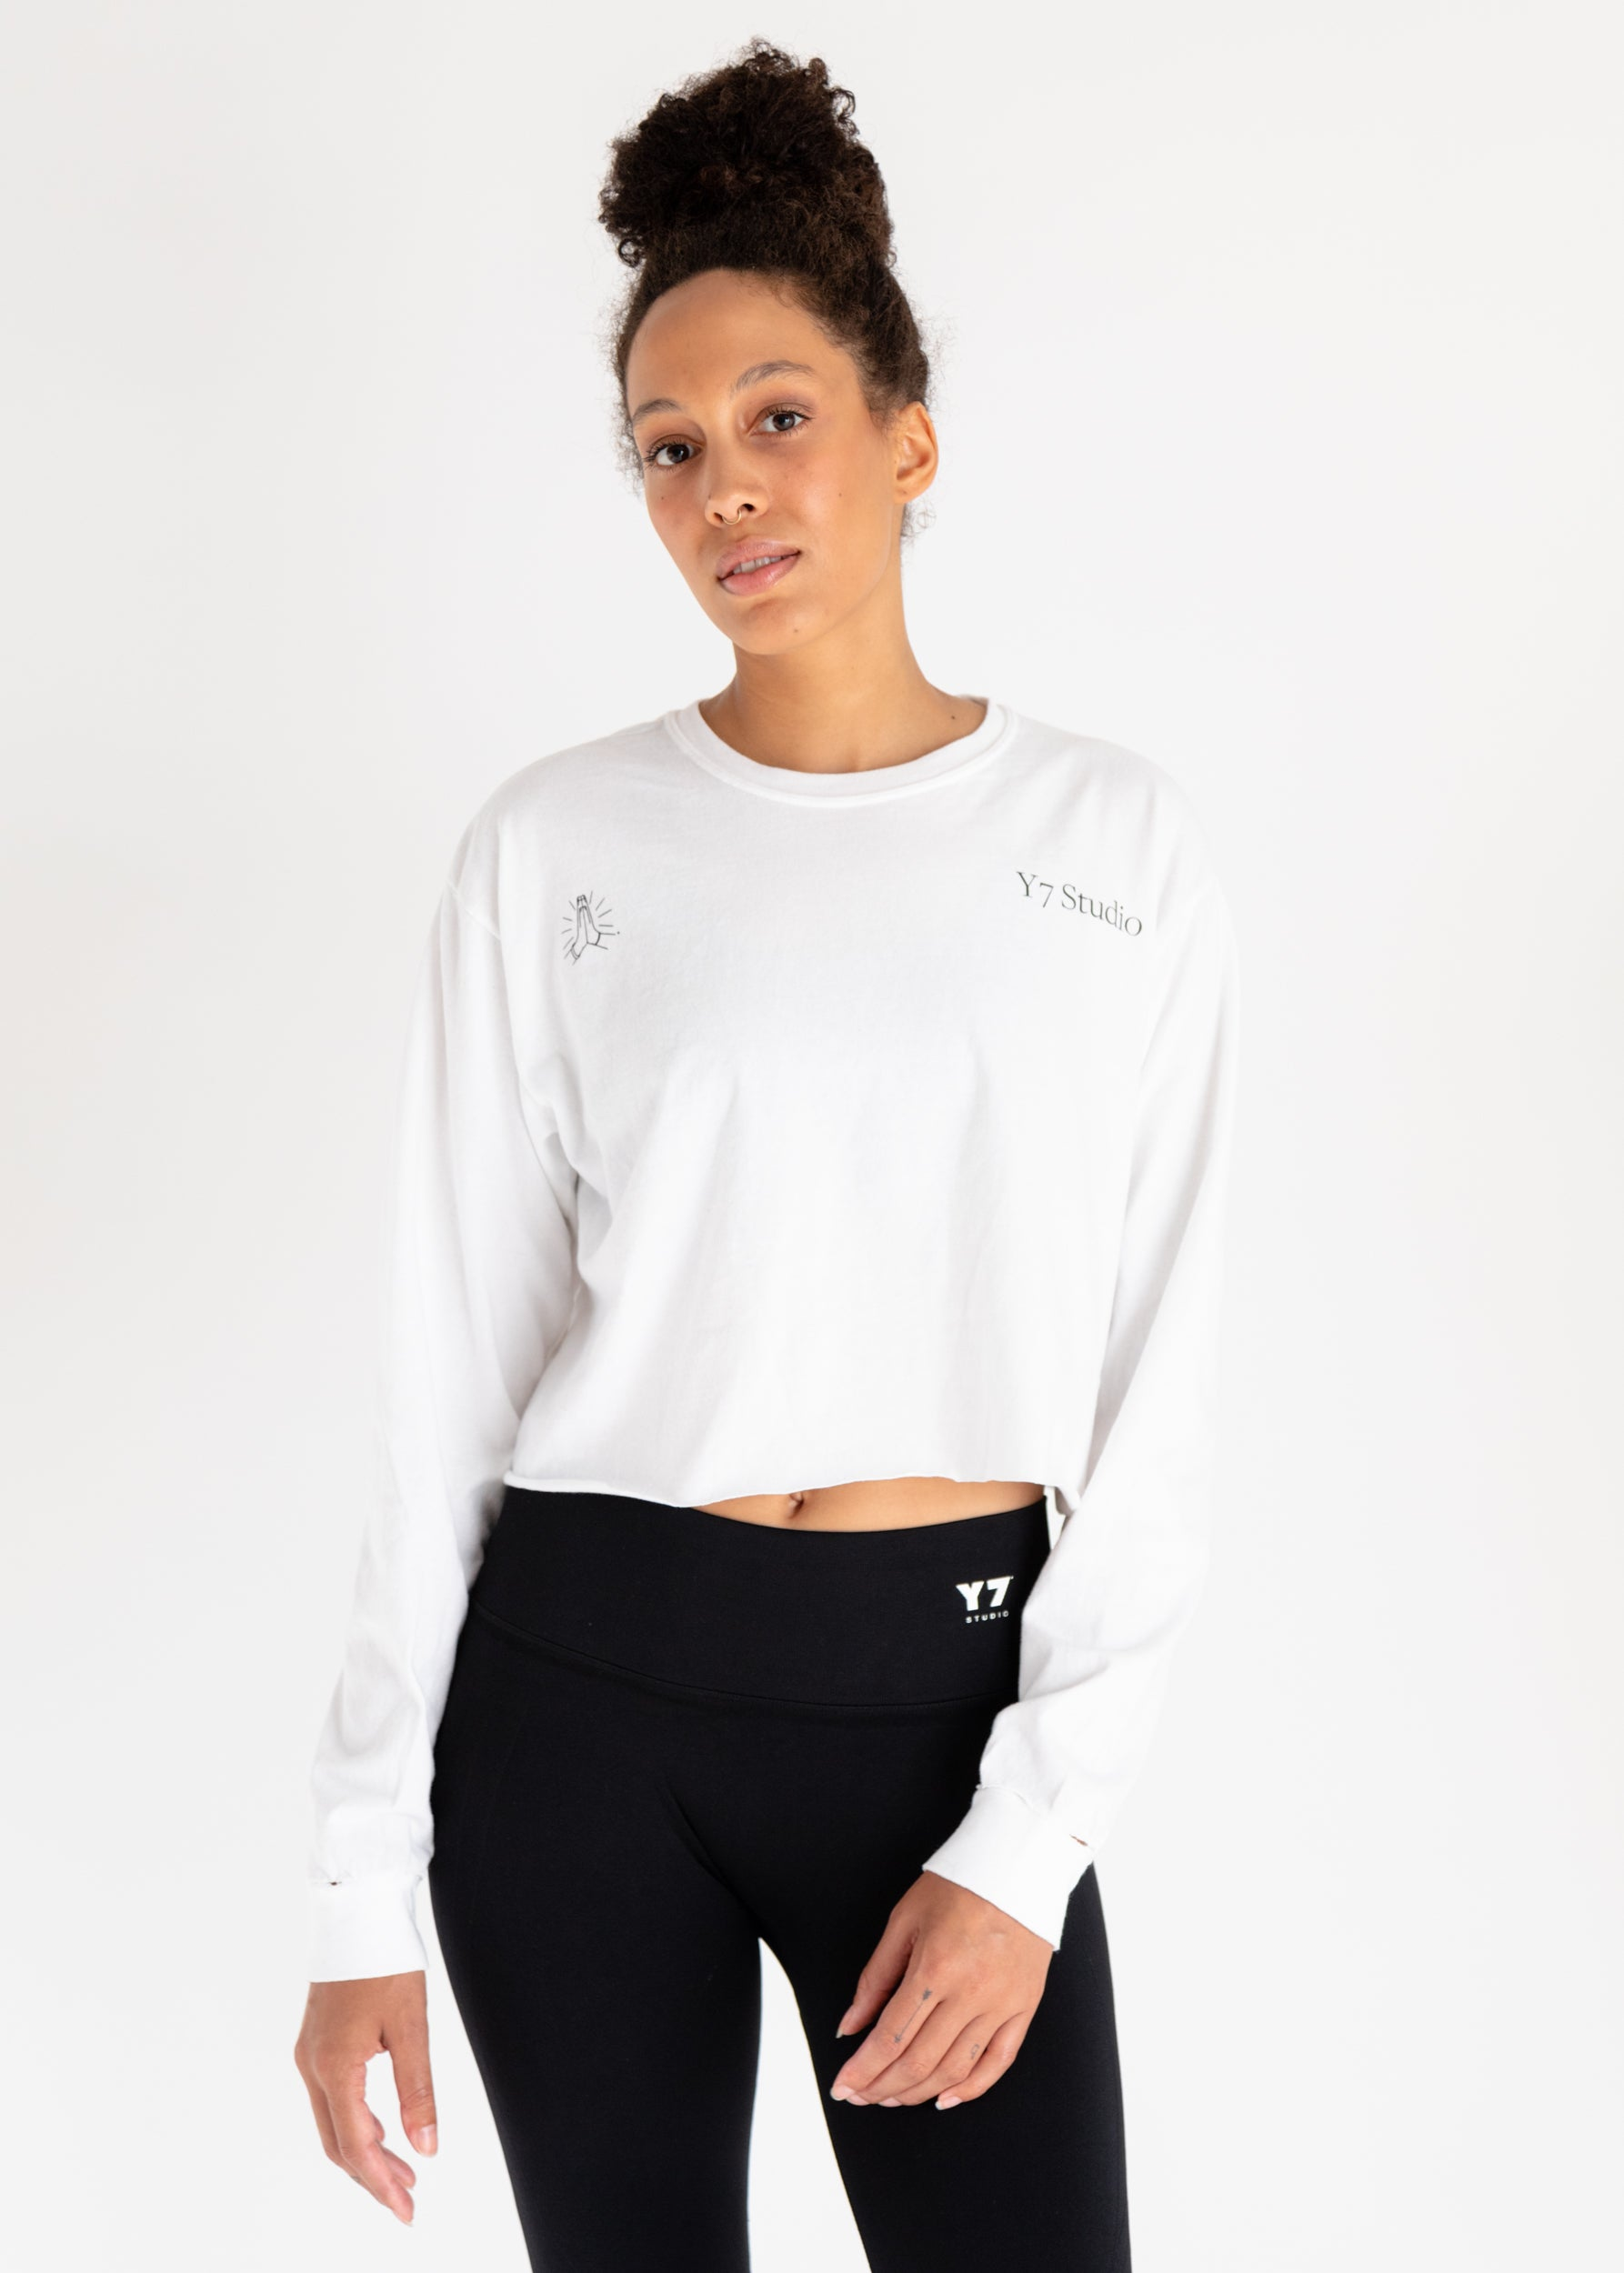 1234567 Cropped Long Sleeve